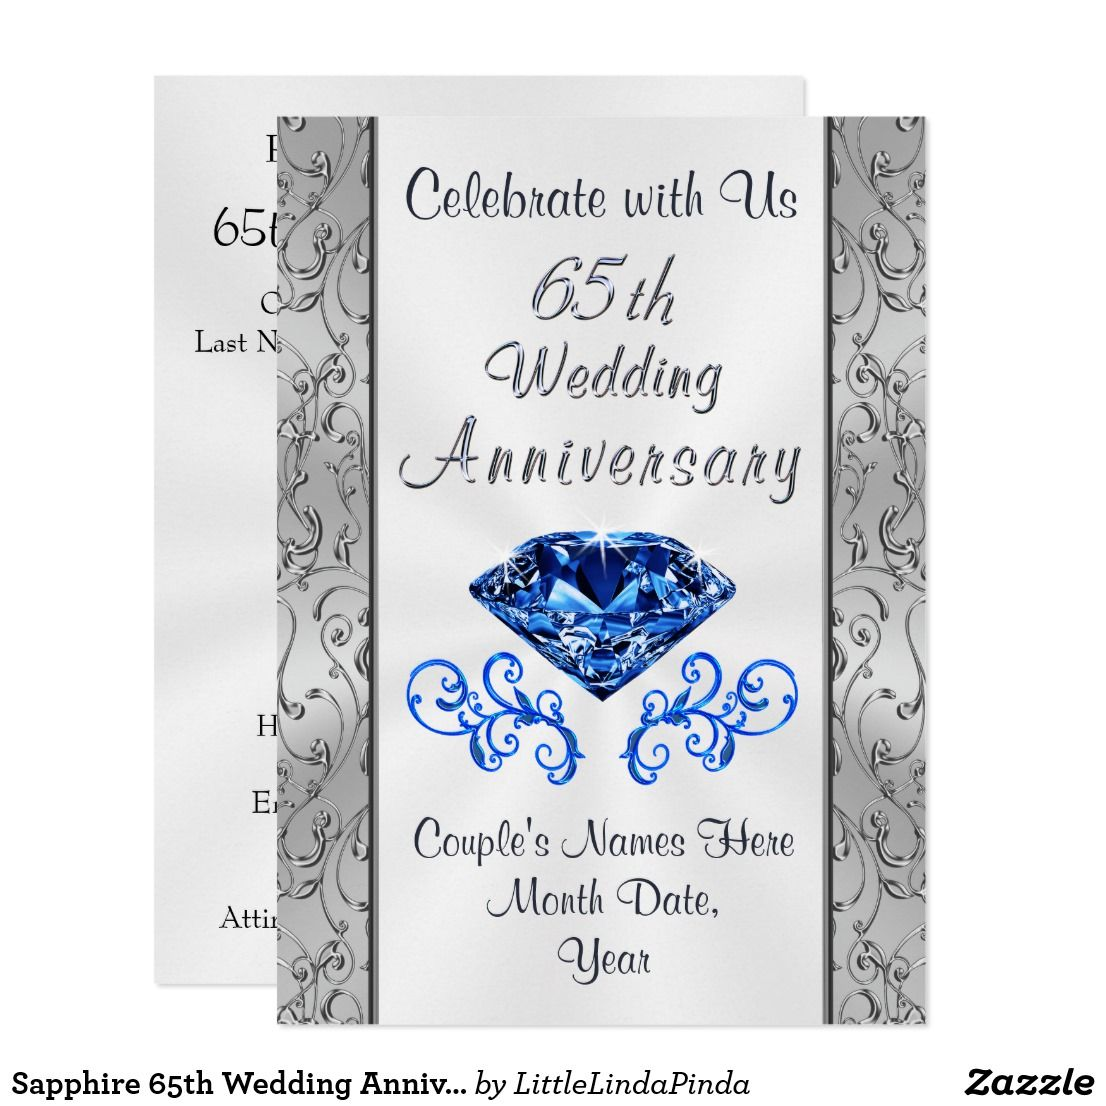 Stunning 65th Wedding Anniversary Invitations Personalized Click Image Or GO HERE